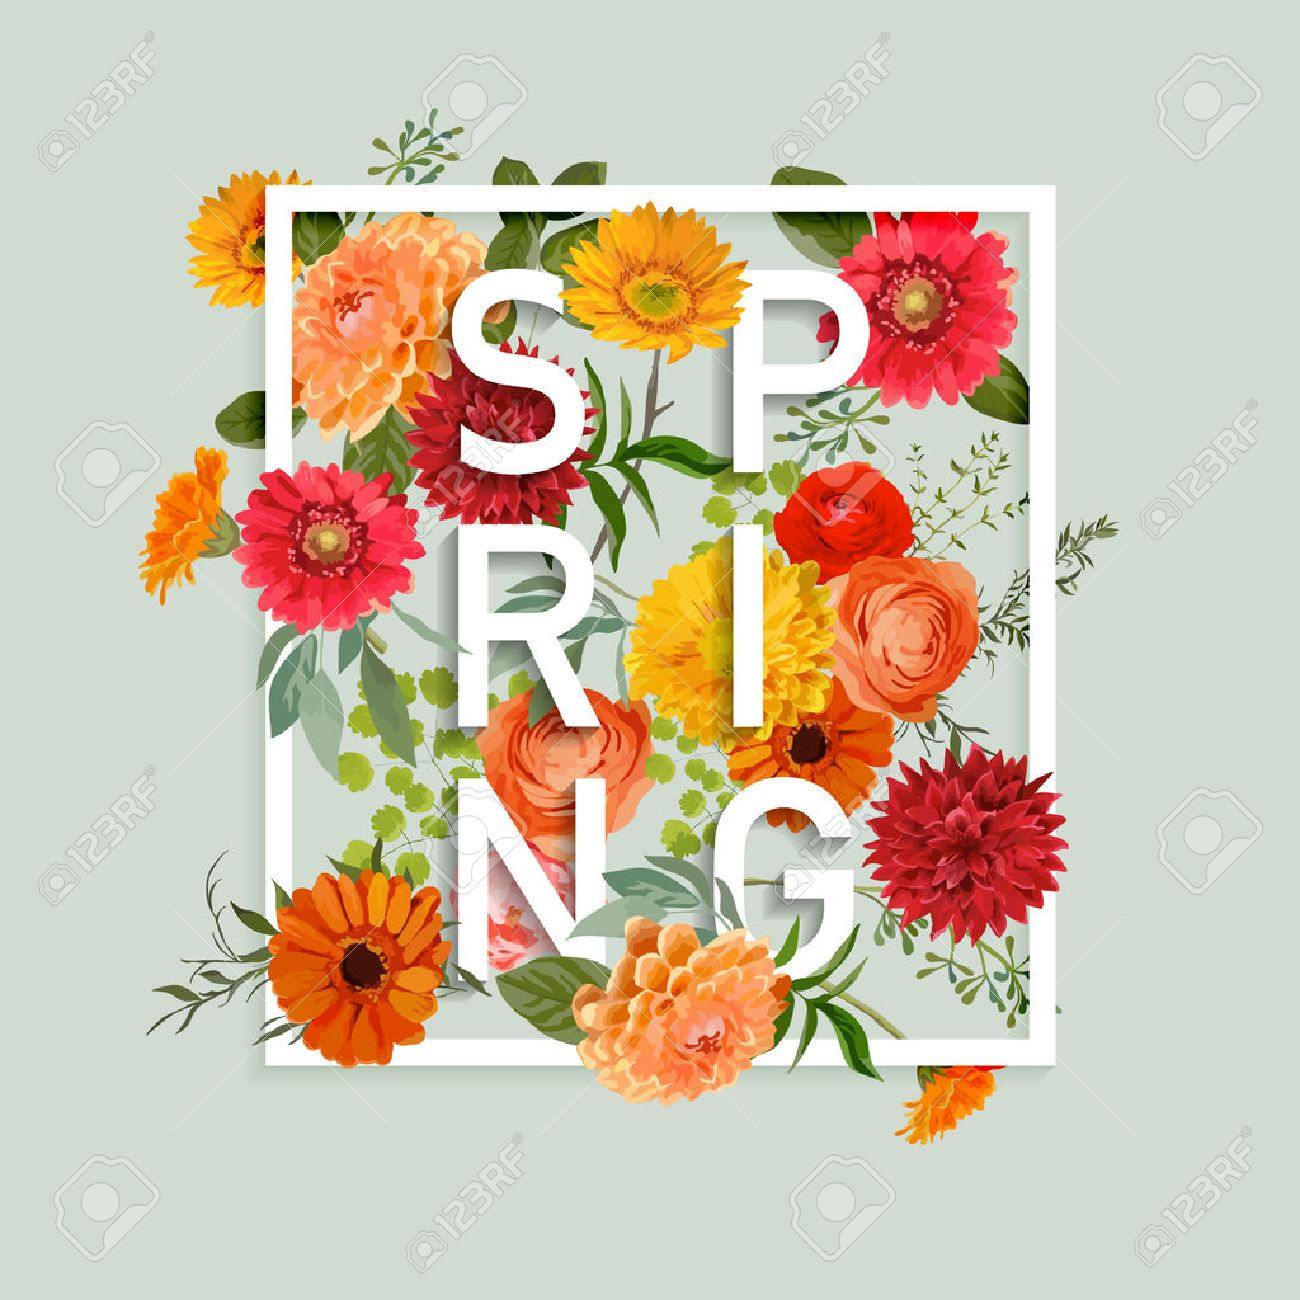 Floral Spring Graphic Design With Colorful Flowers For T Shirt